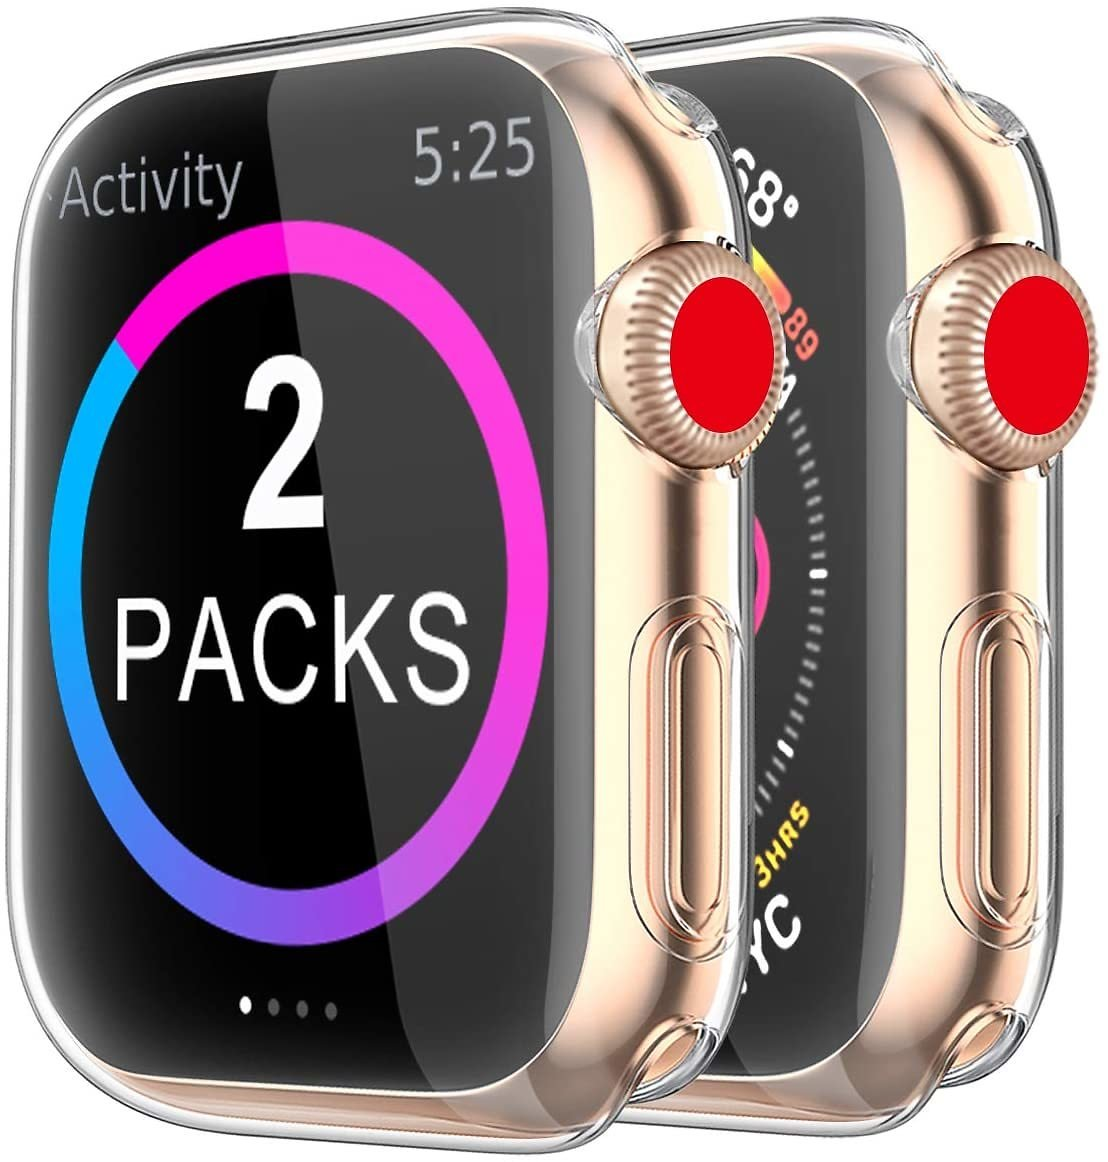 [2 Pack] BRG Case for Apple Watch Screen Protector 40mm 44mm 38mm 42mm, IWatch Series 5 4 3 Soft TPU HD Clear Ultra-Thin Overall Protective Cover Case